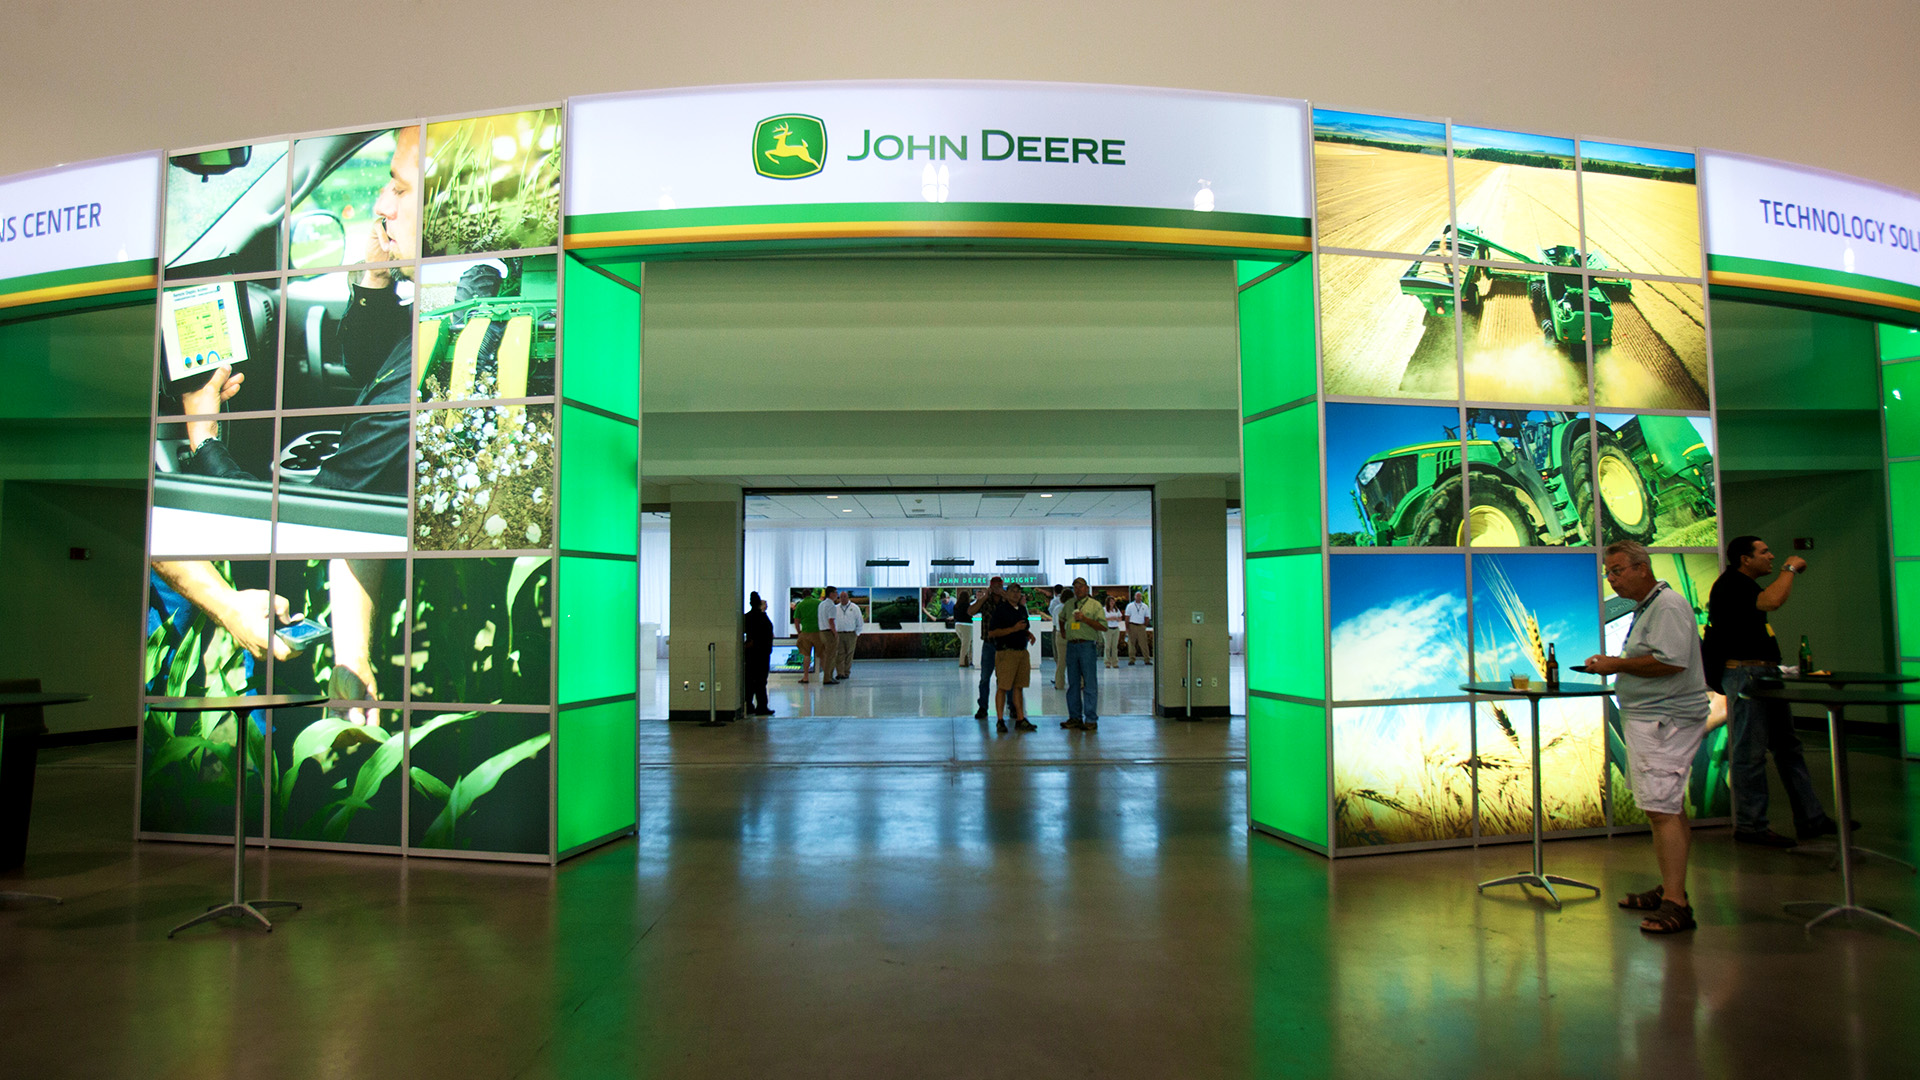 John Deere Ag Management Solutions - Technology that pays Brochure